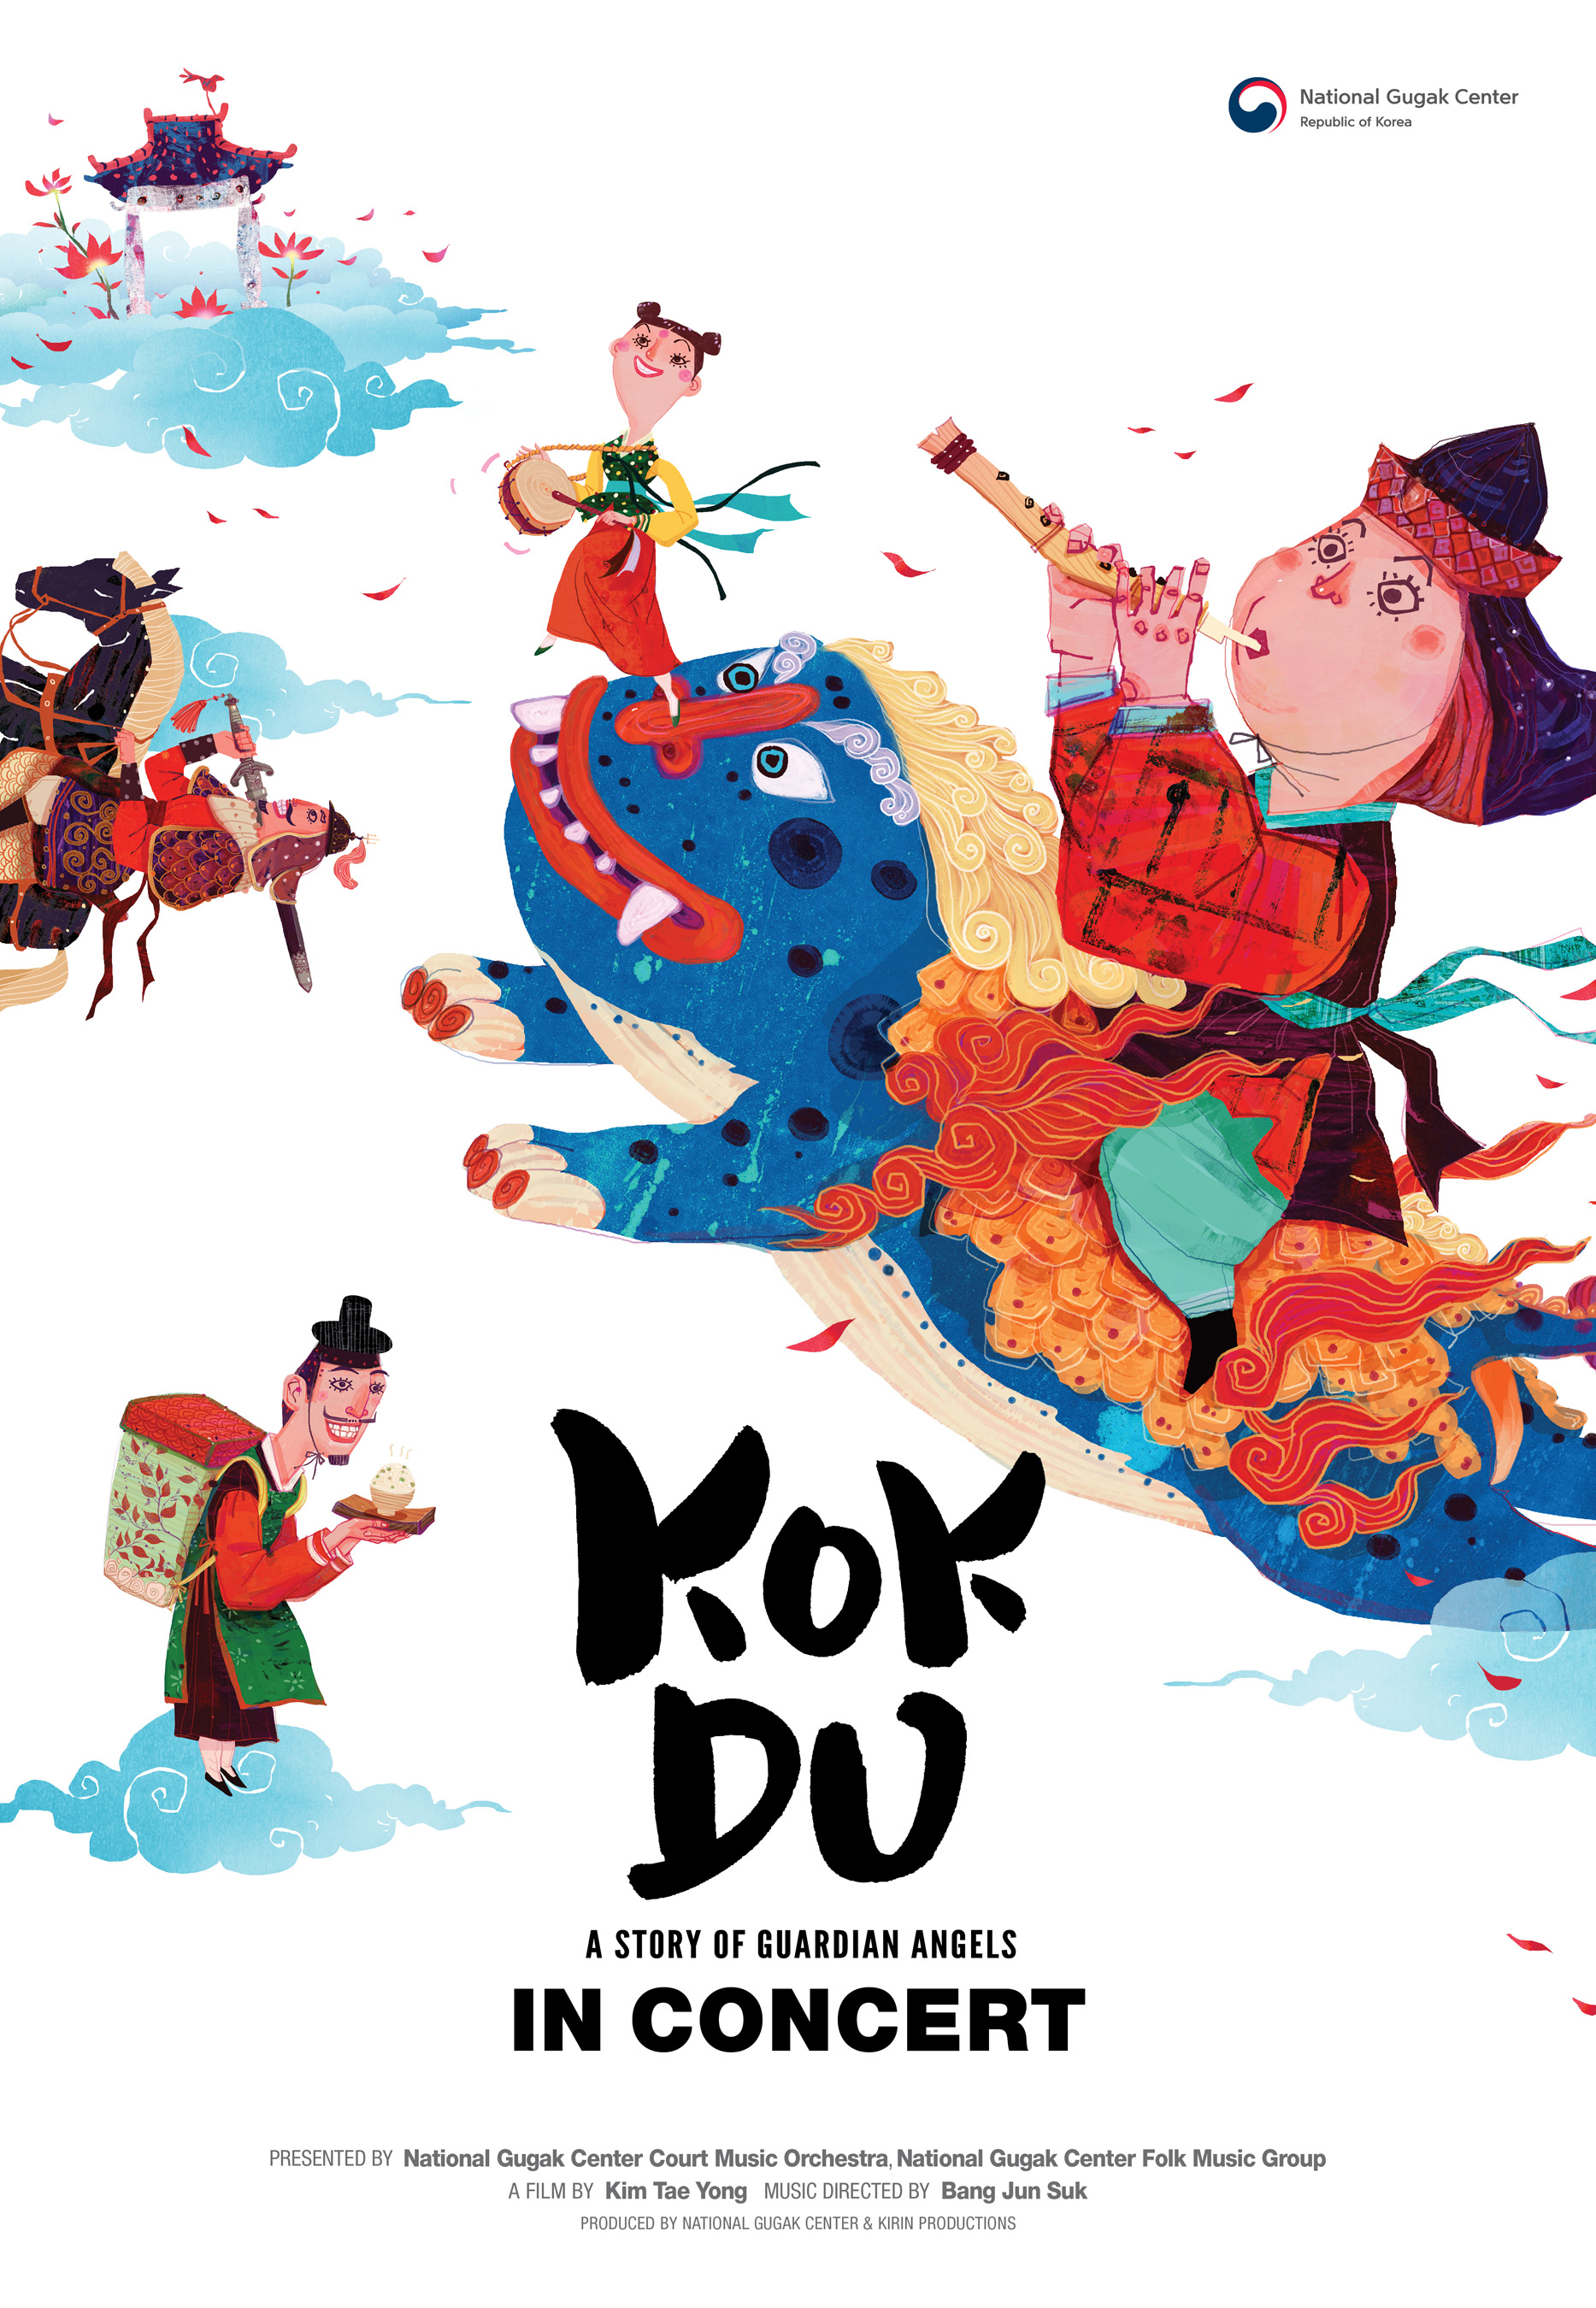 Kokdu premiered to much acclaim at the 2018 Busan International Film Festival. Join us for a heartwarming story of loss and solace that spans genres of cinema and music.